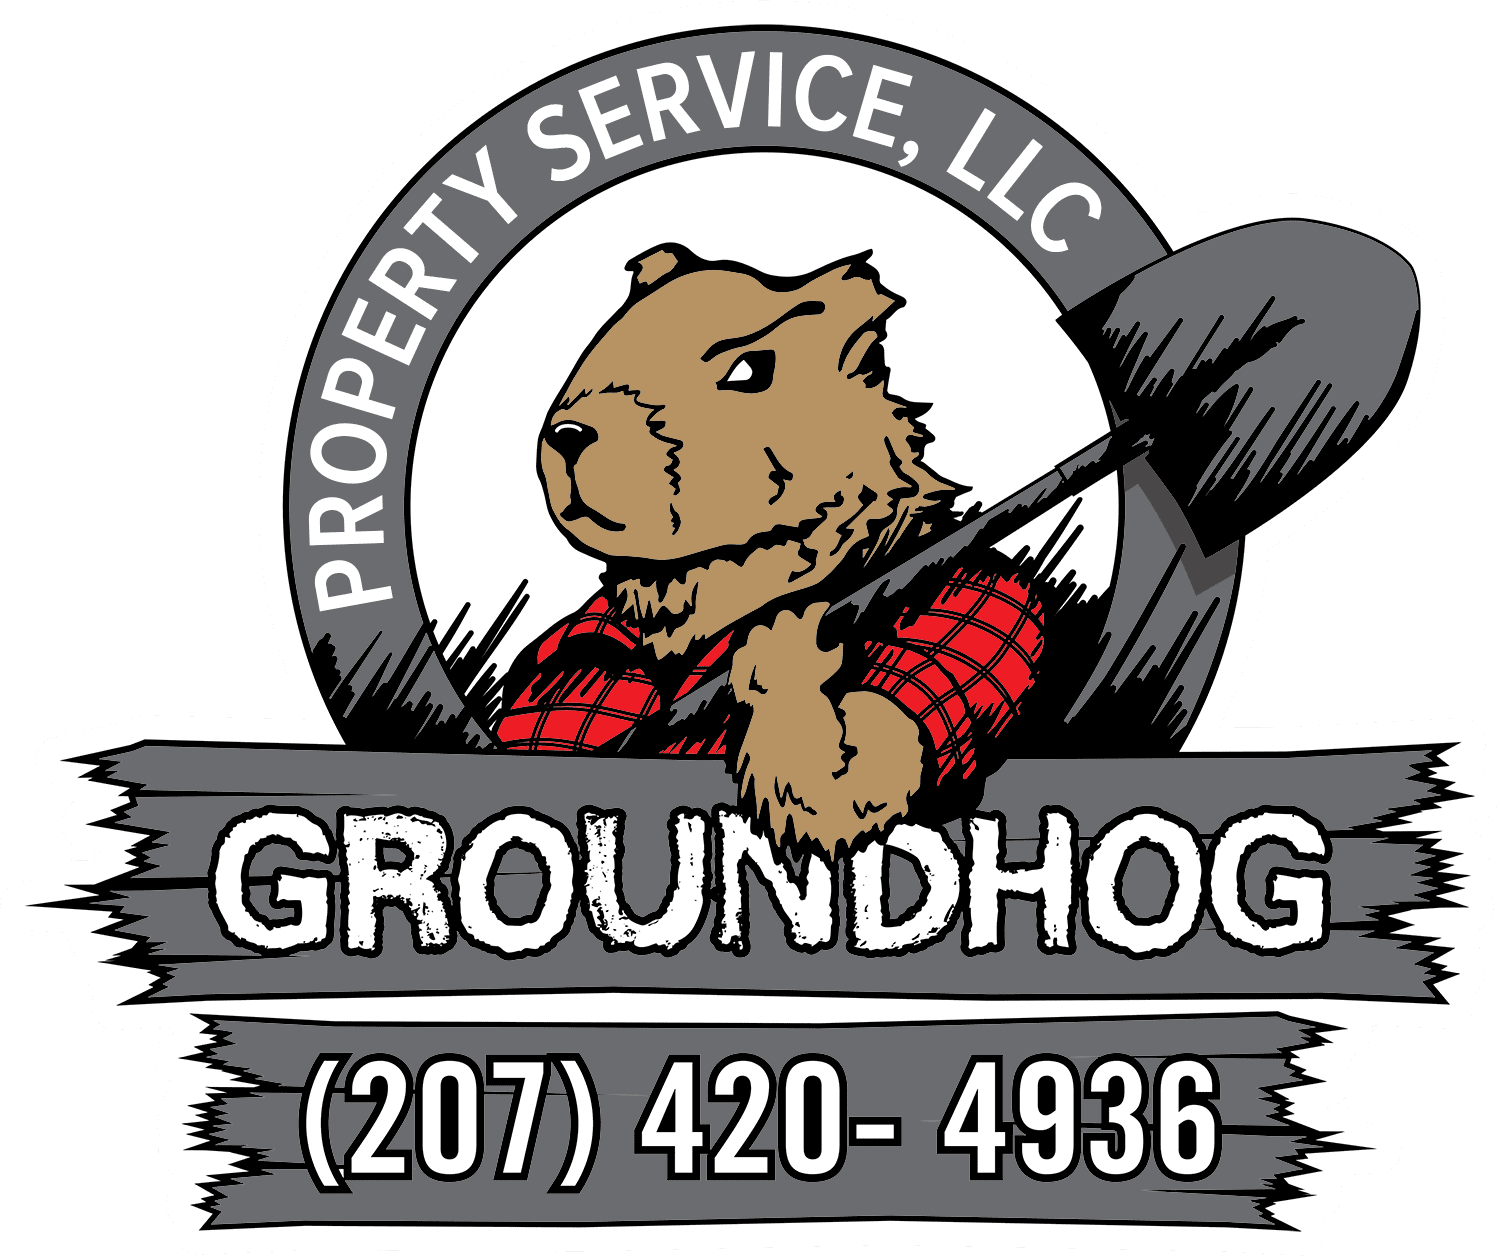 Groundhog Property Solutions Landscaping A Trusted Partner